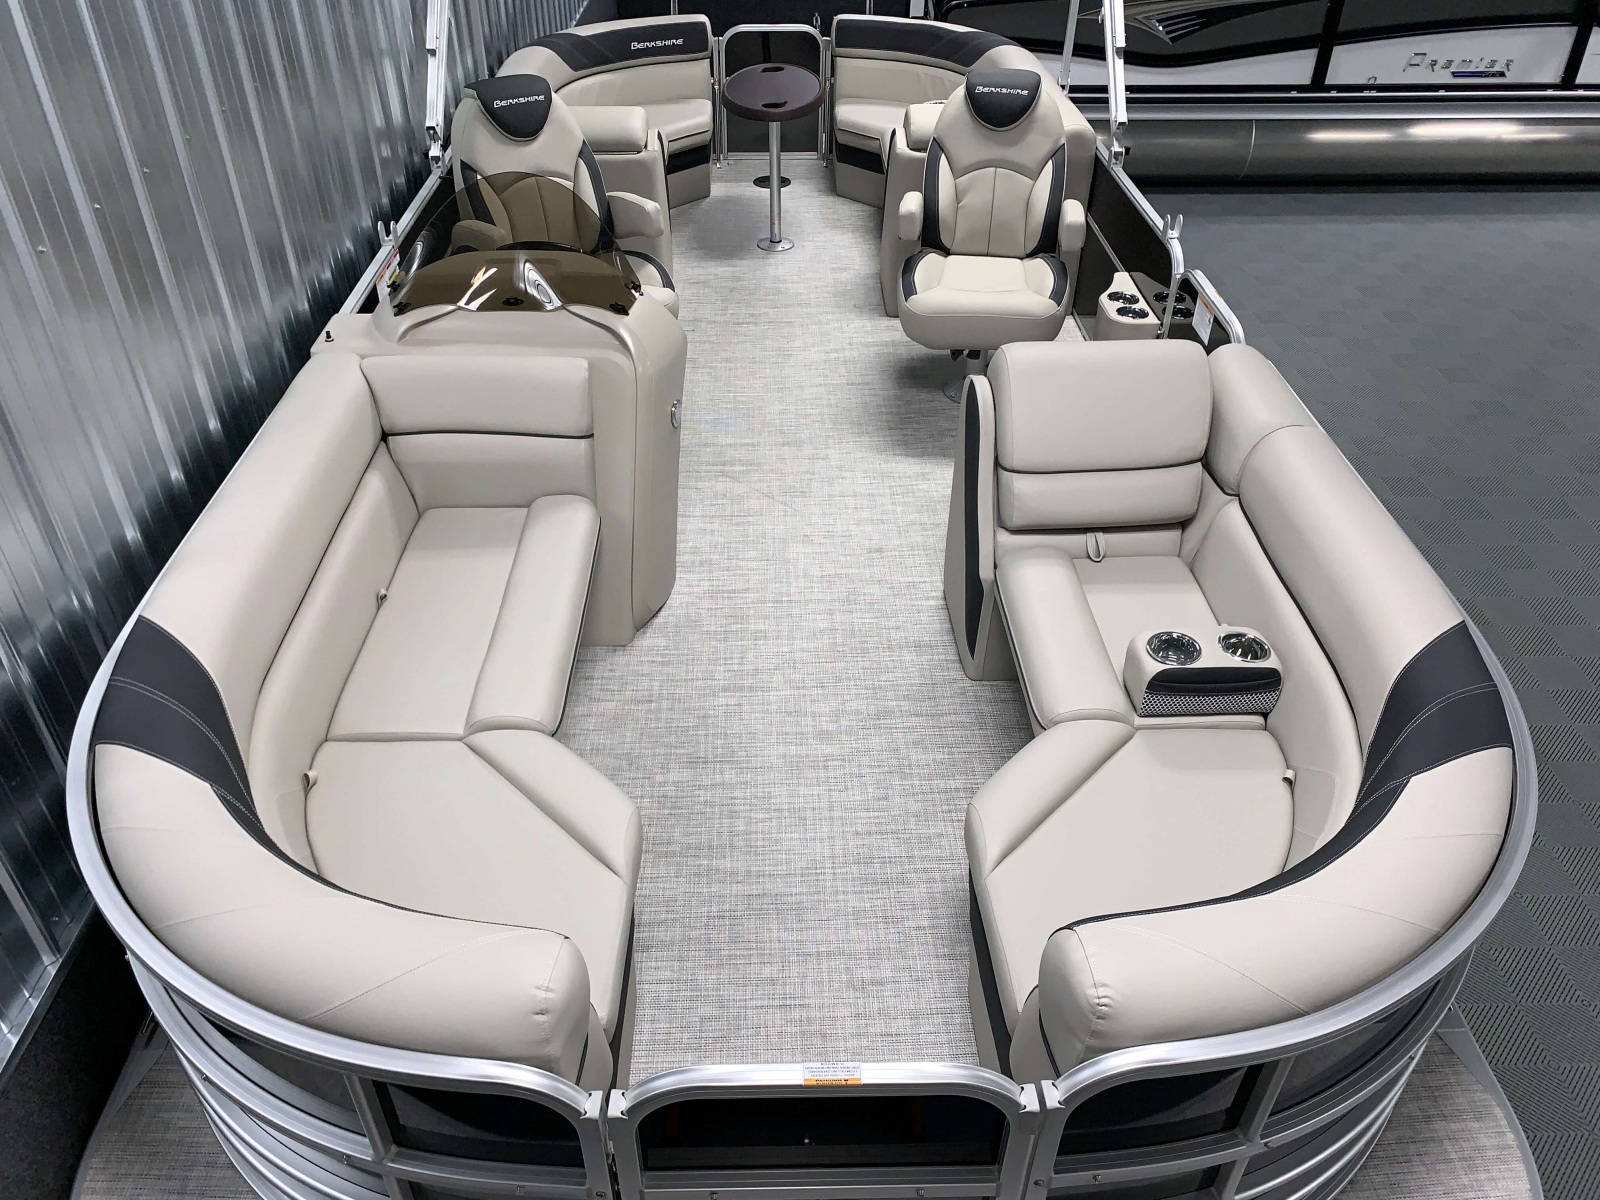 Interior Layout of the 2021 Berkshire 24RFX LE Pontoon Boat